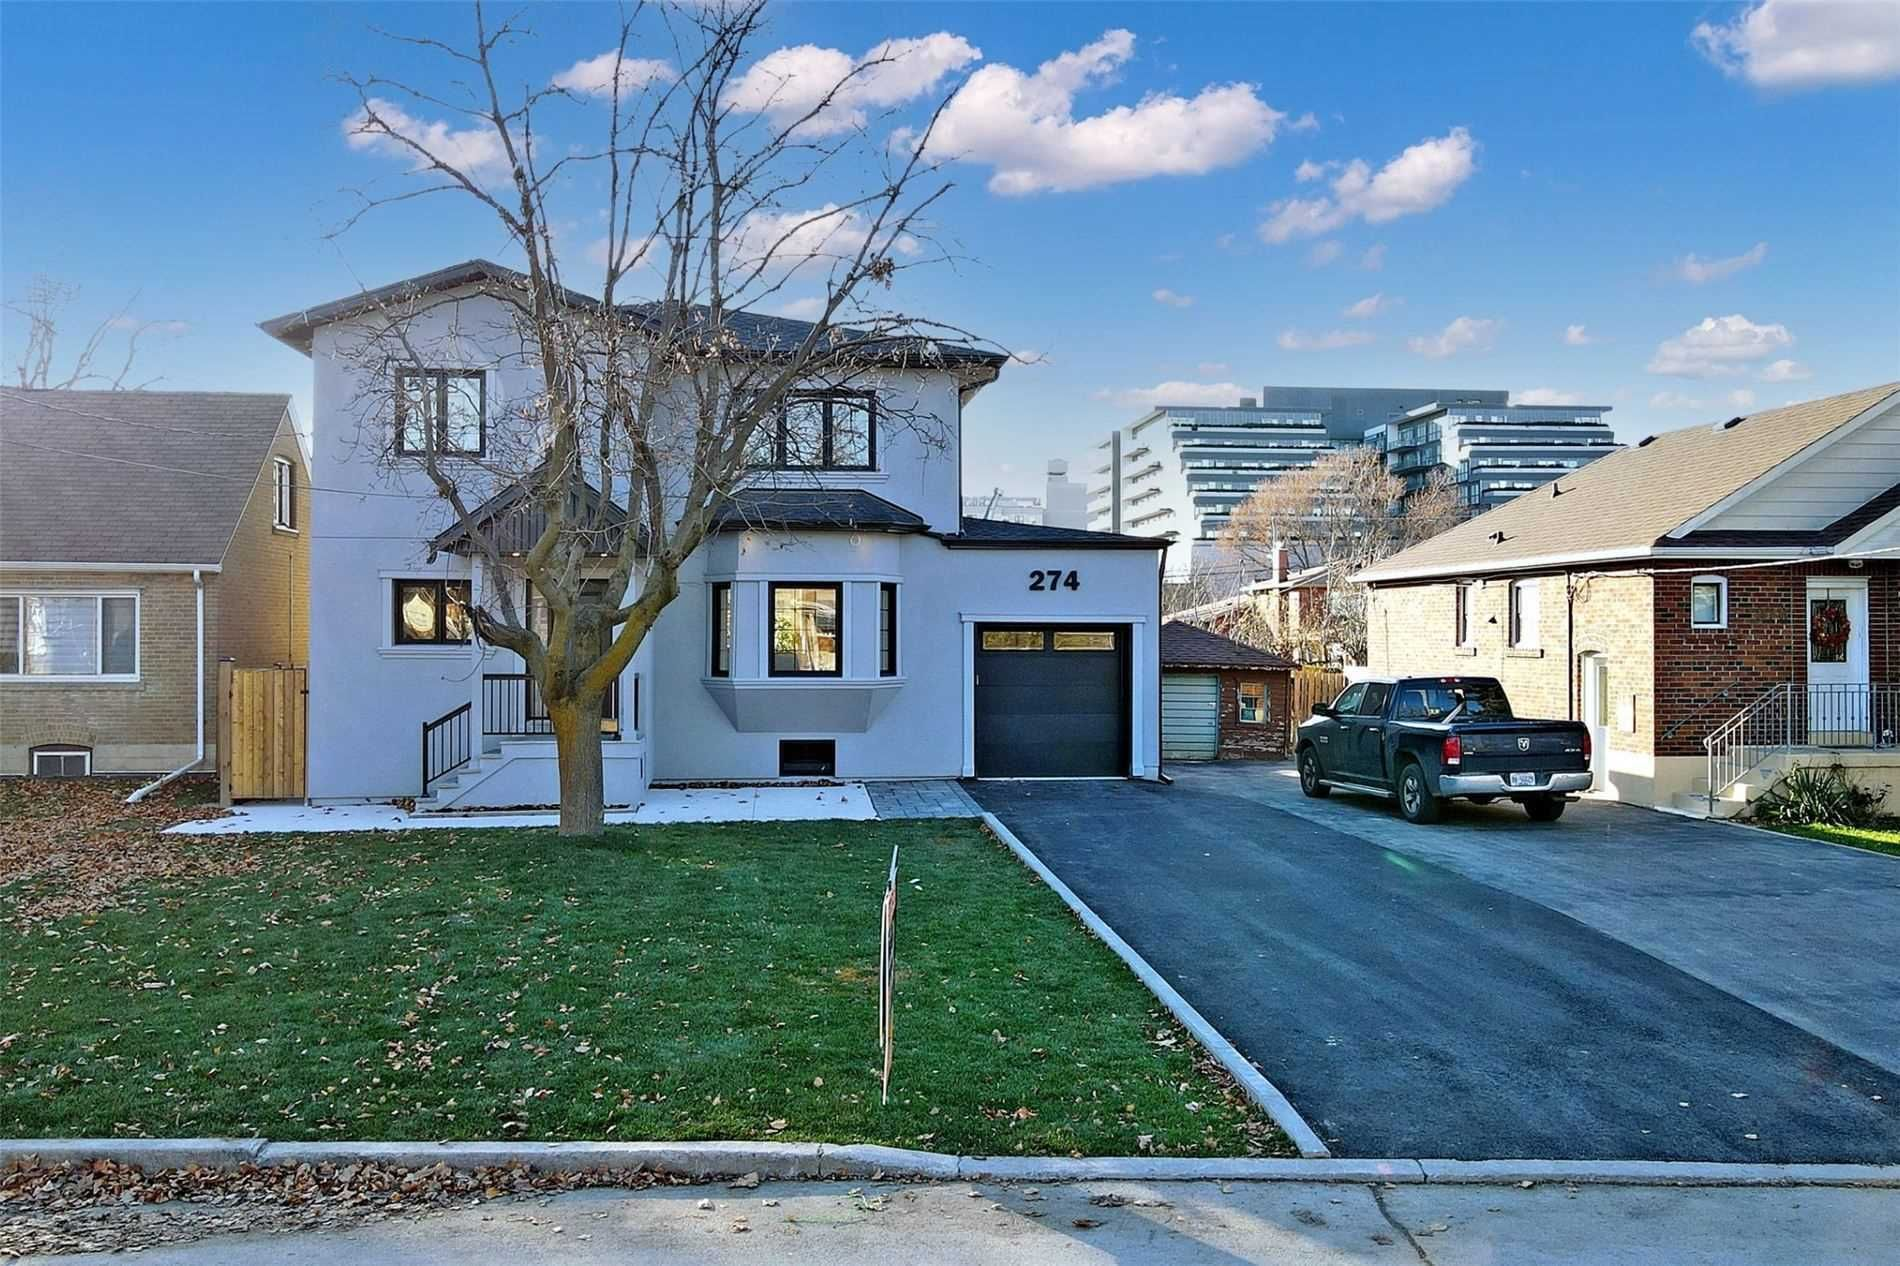 Main Photo: 274 Cornelius Parkway in Toronto: Downsview-Roding-CFB Freehold for sale (Toronto W05)  : MLS®# W5128866